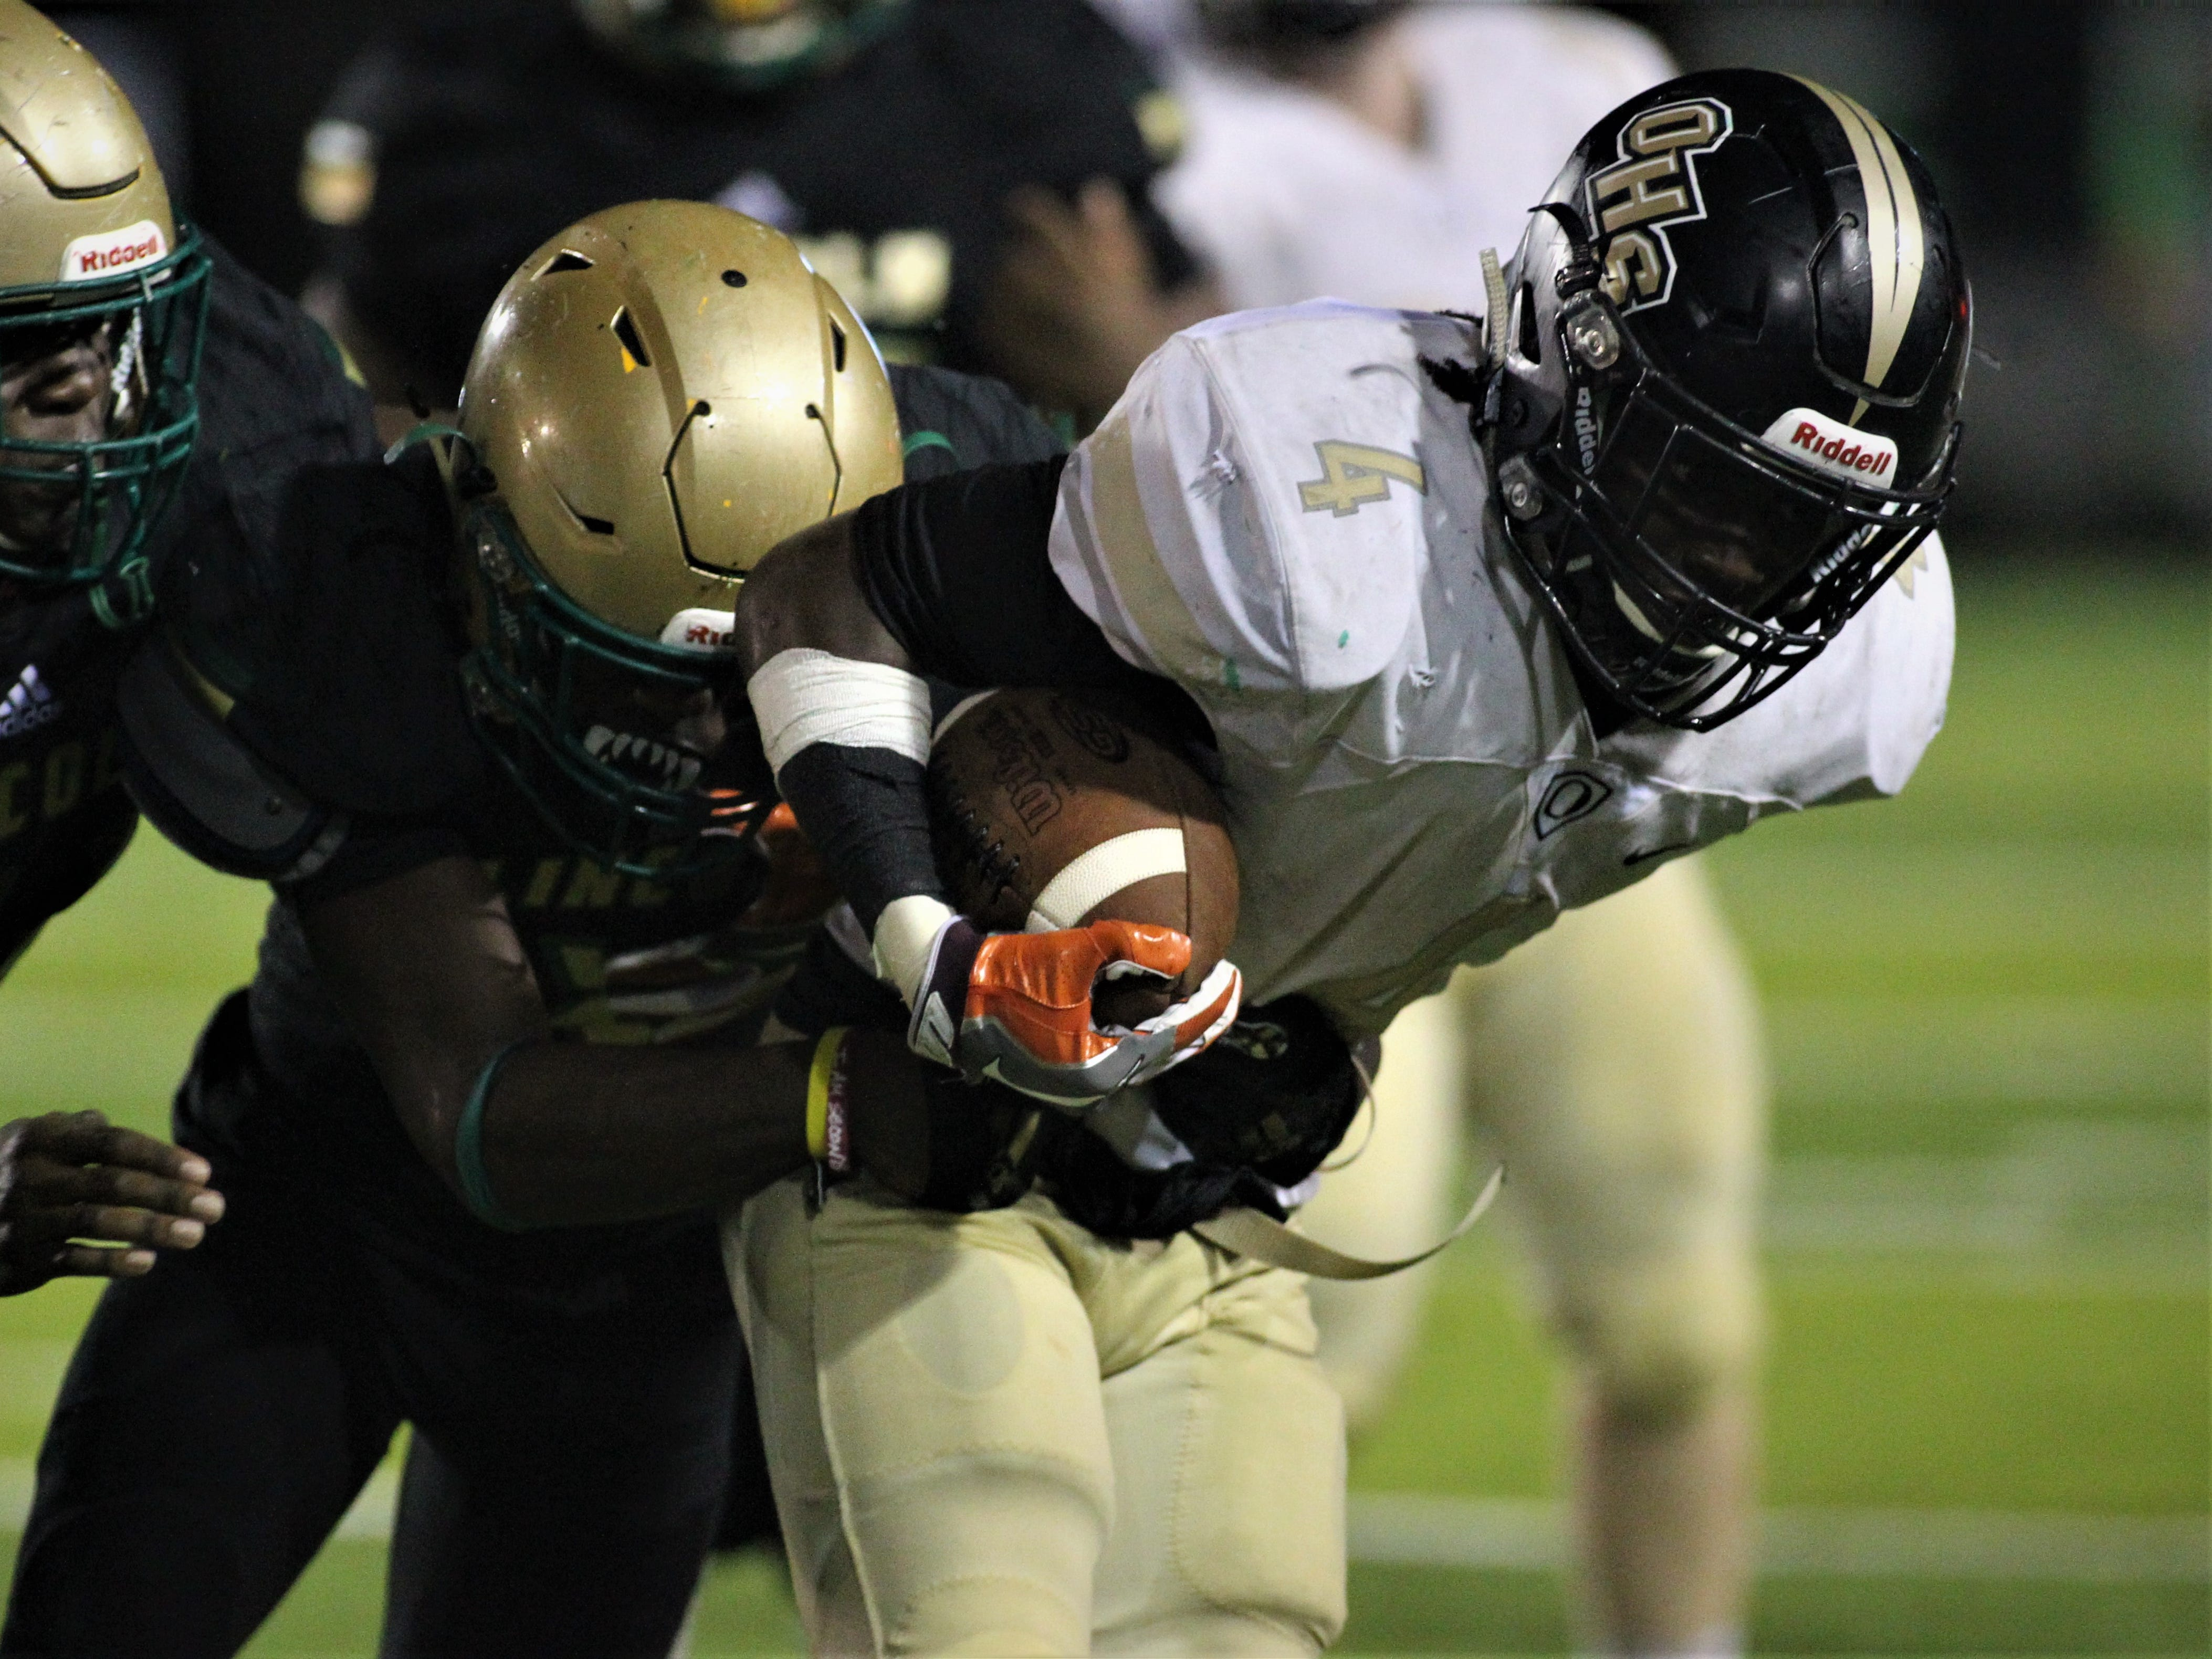 Oakleaf running back Keshawn King is dragged down by Lincoln defenders as the Trojans beat Oakleaf 38-31 in three overtime periods during a Region 1-7A quarterfinal Thursday night at Gene Cox Stadium.